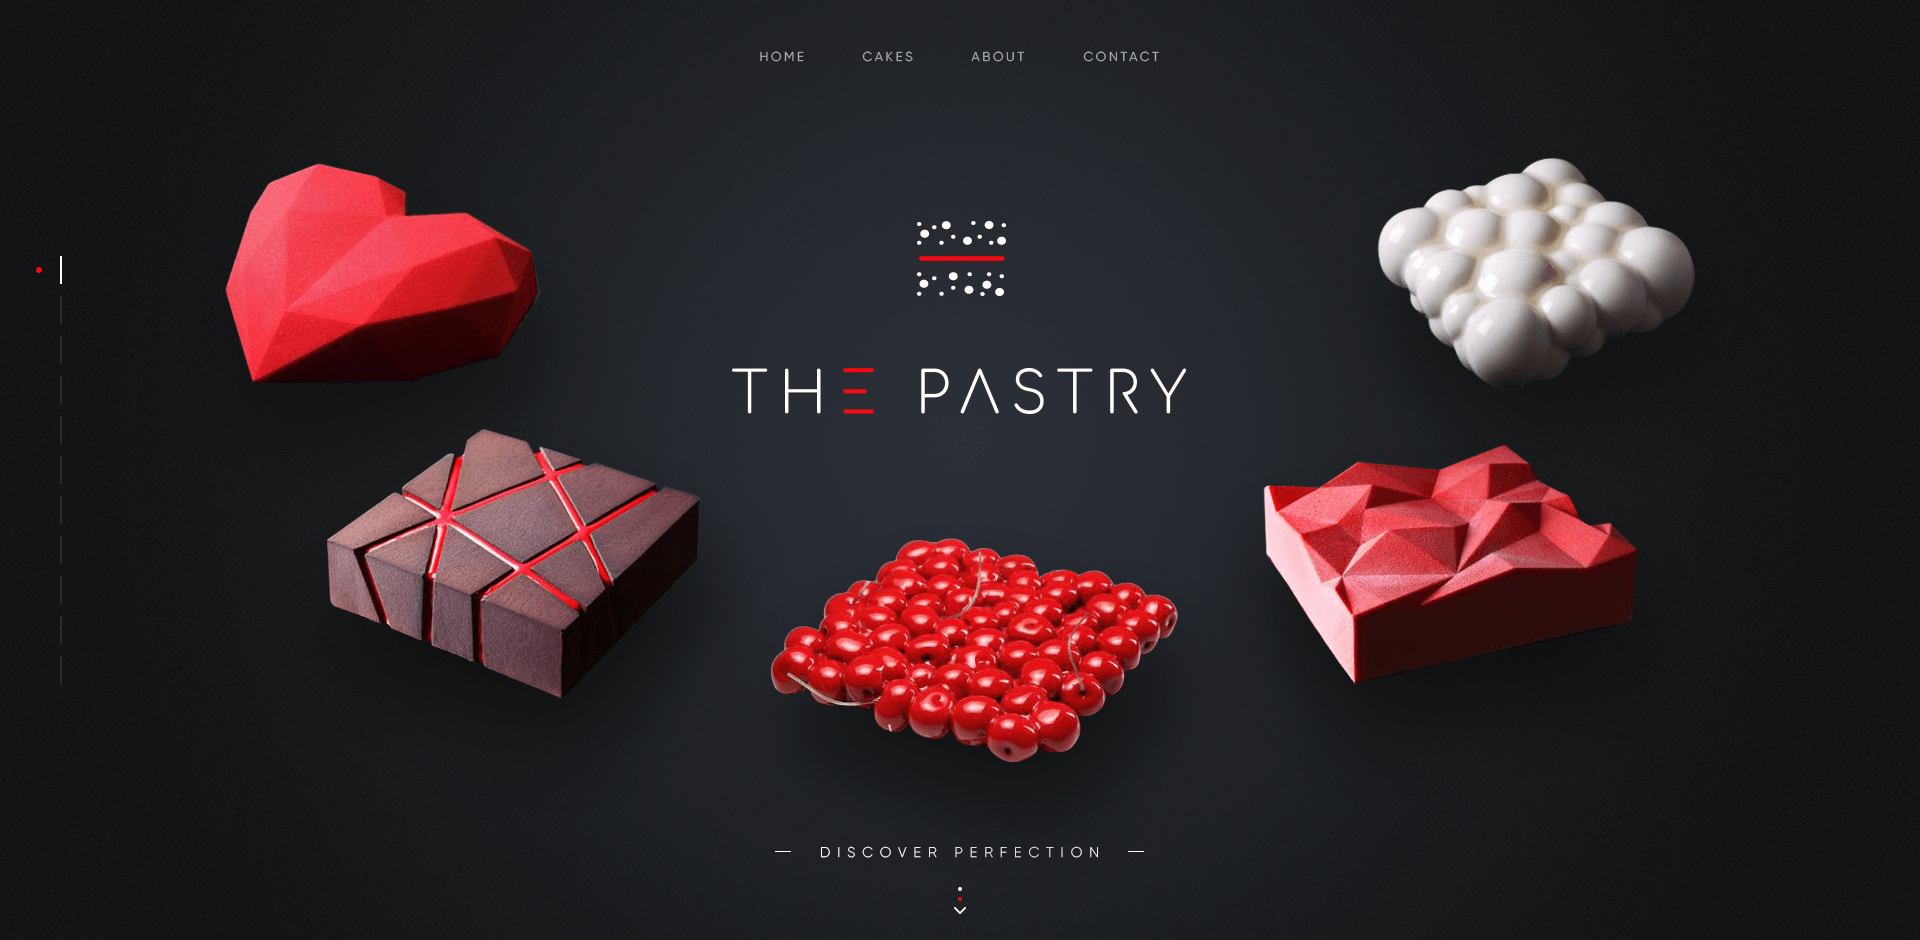 THE PASTRY | Online Store